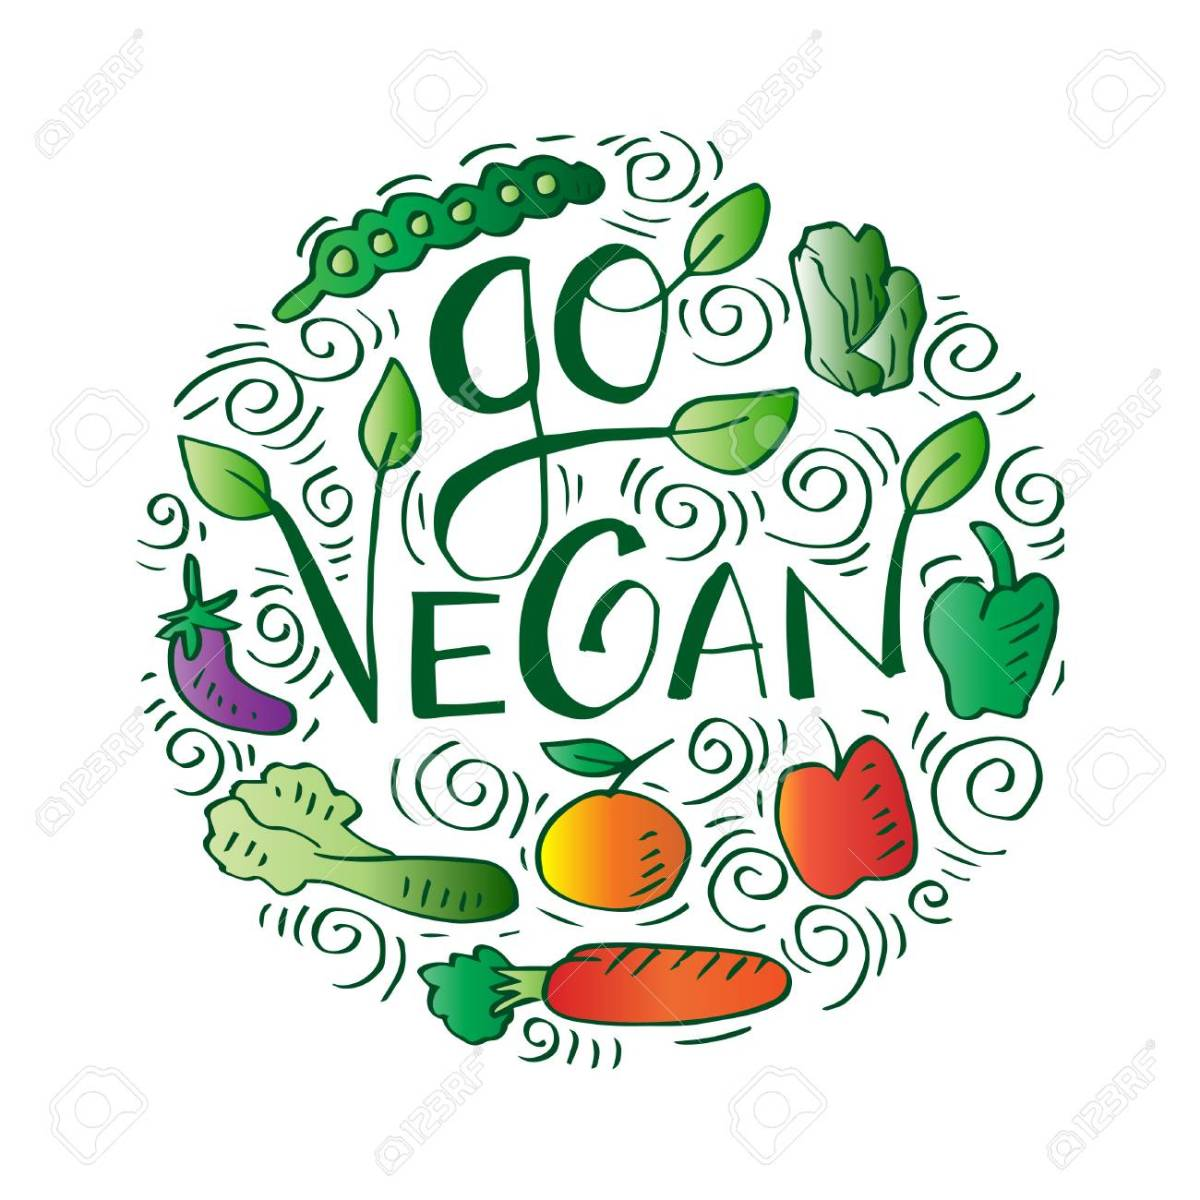 Veganism is Empowerment!